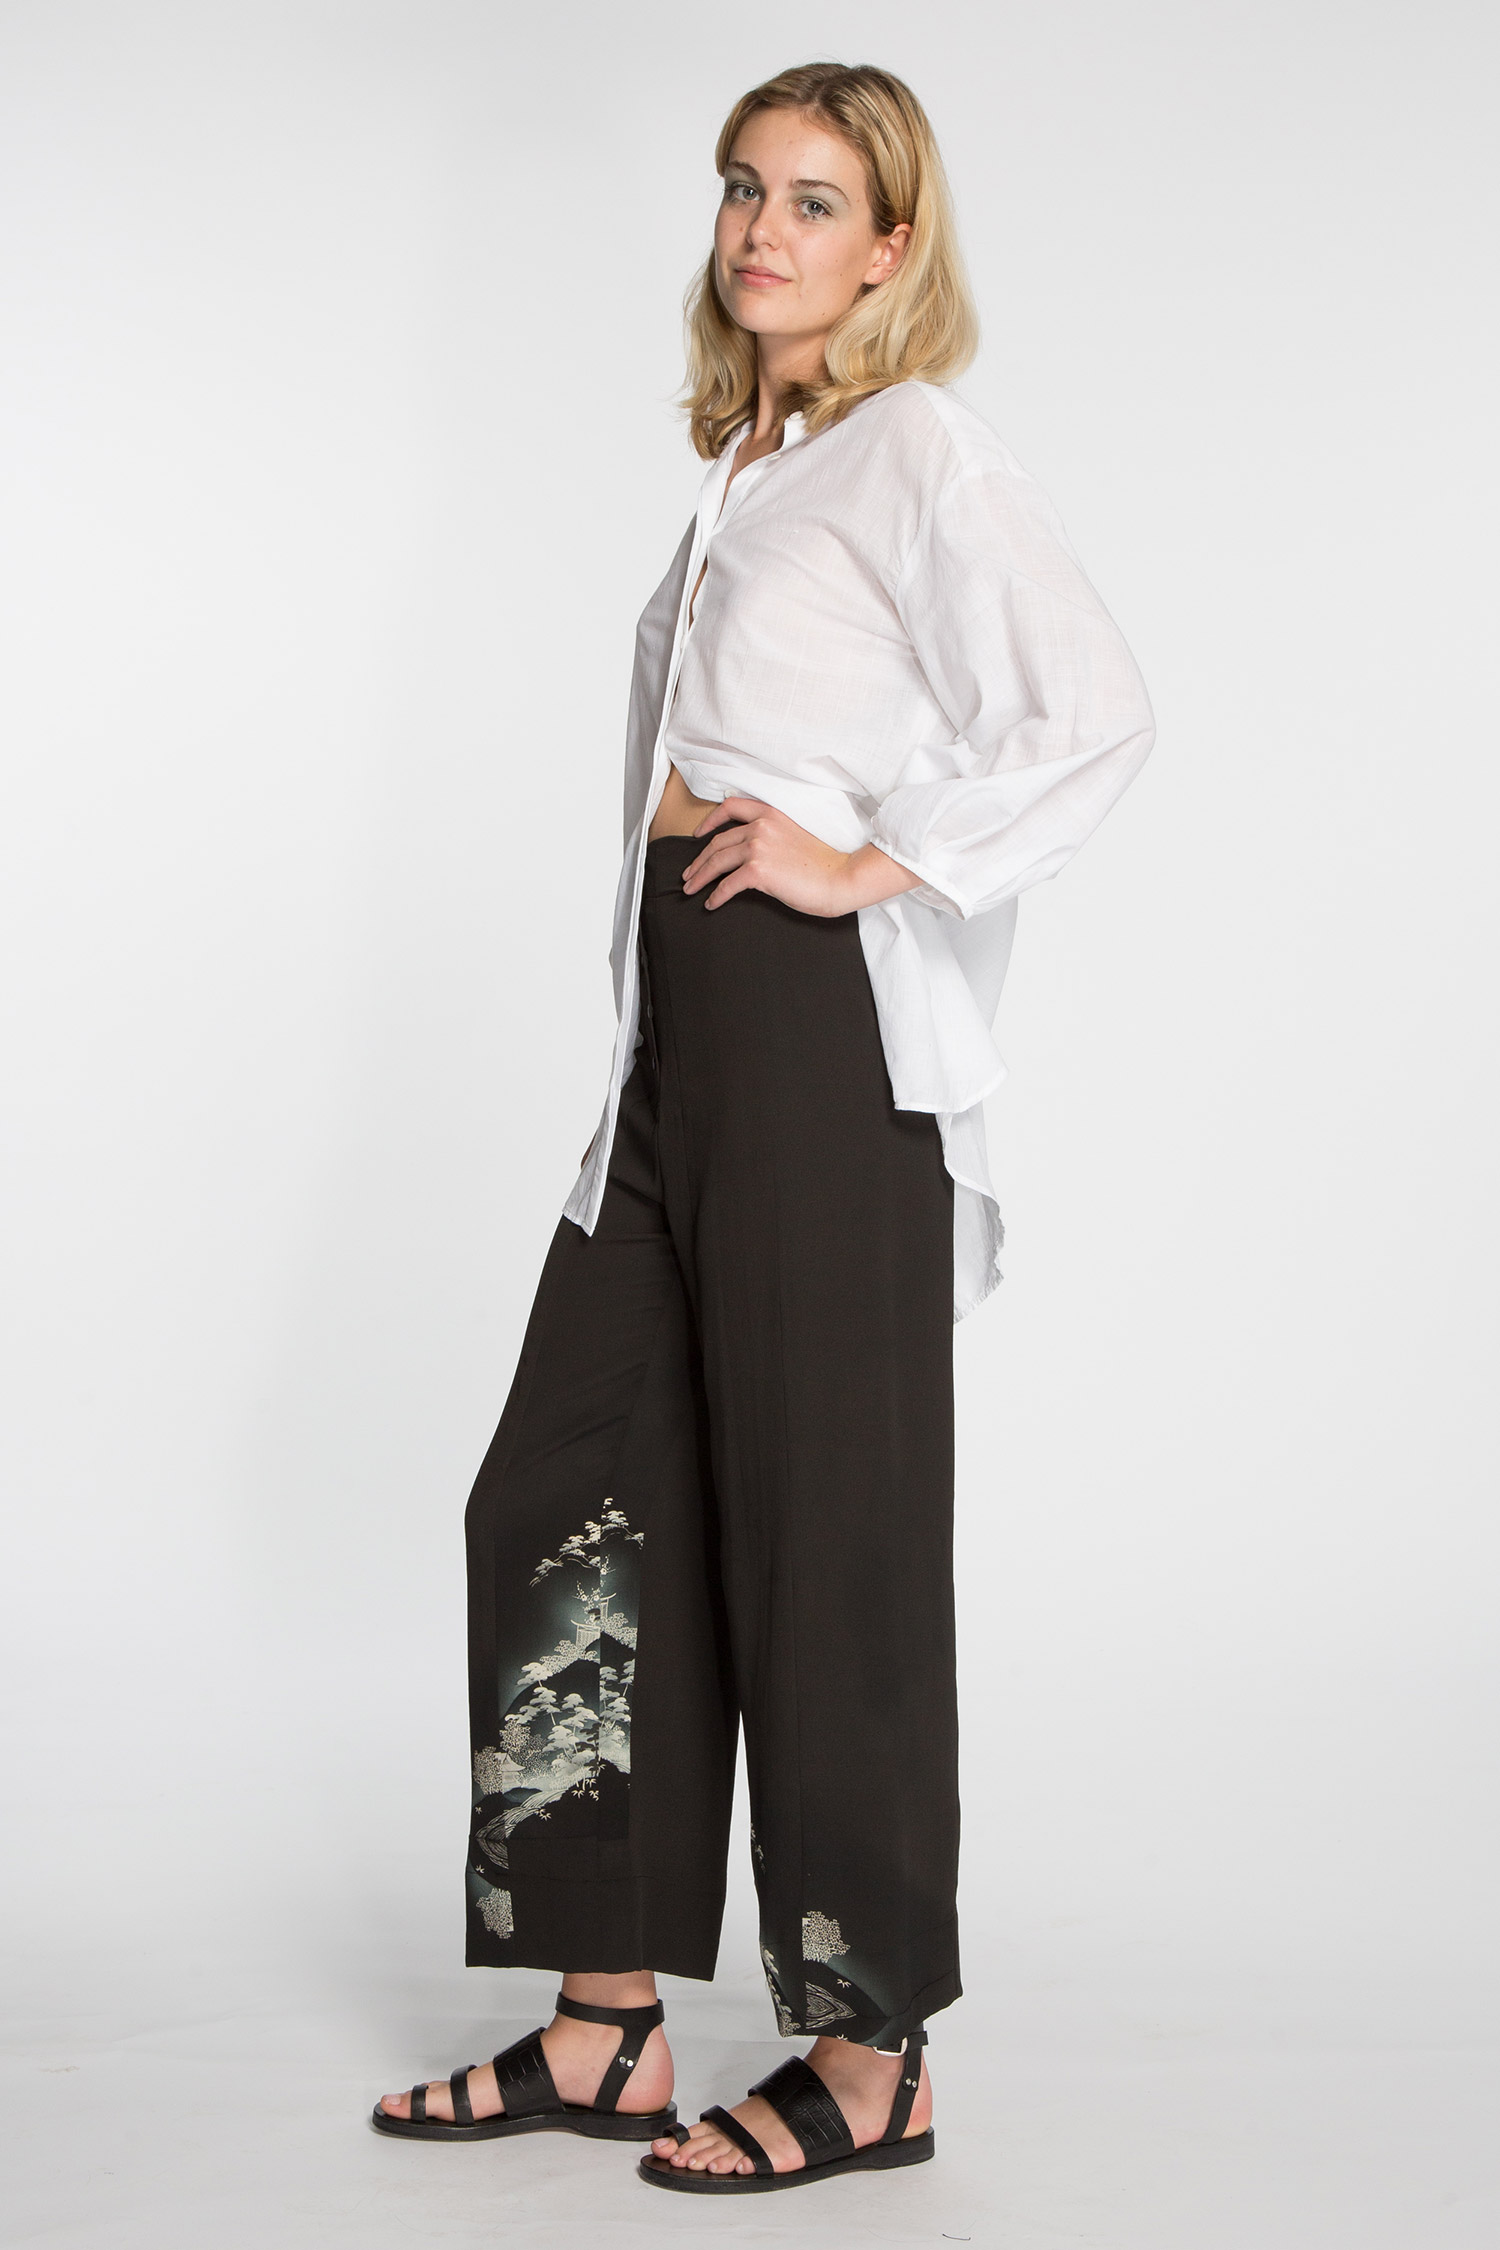 Look2-madison-shirt-panel-pant-8-26.jpg